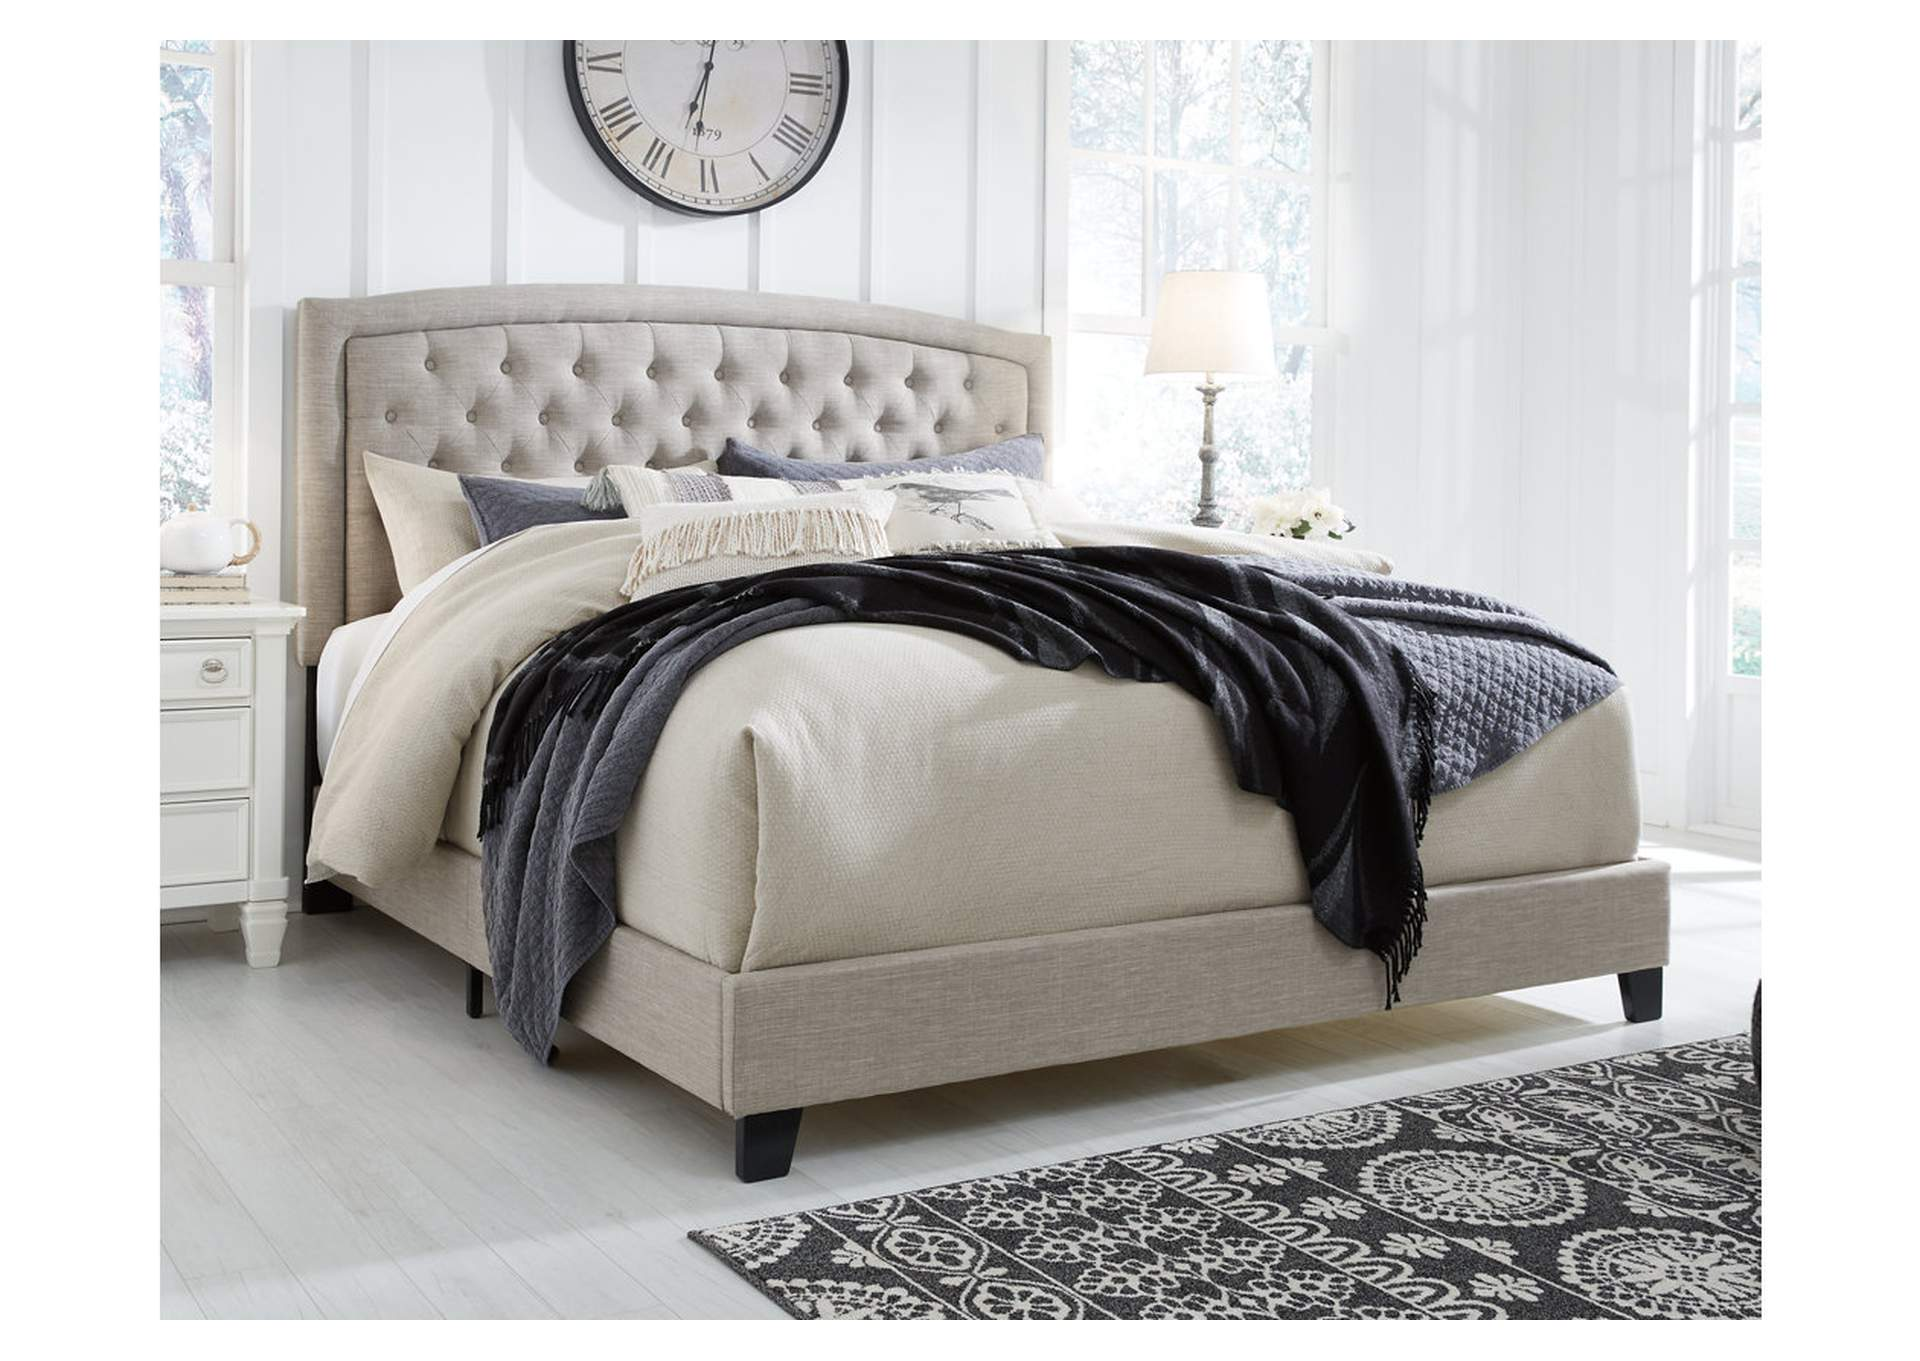 Jerary Gray King Upholstered Bed,Signature Design By Ashley